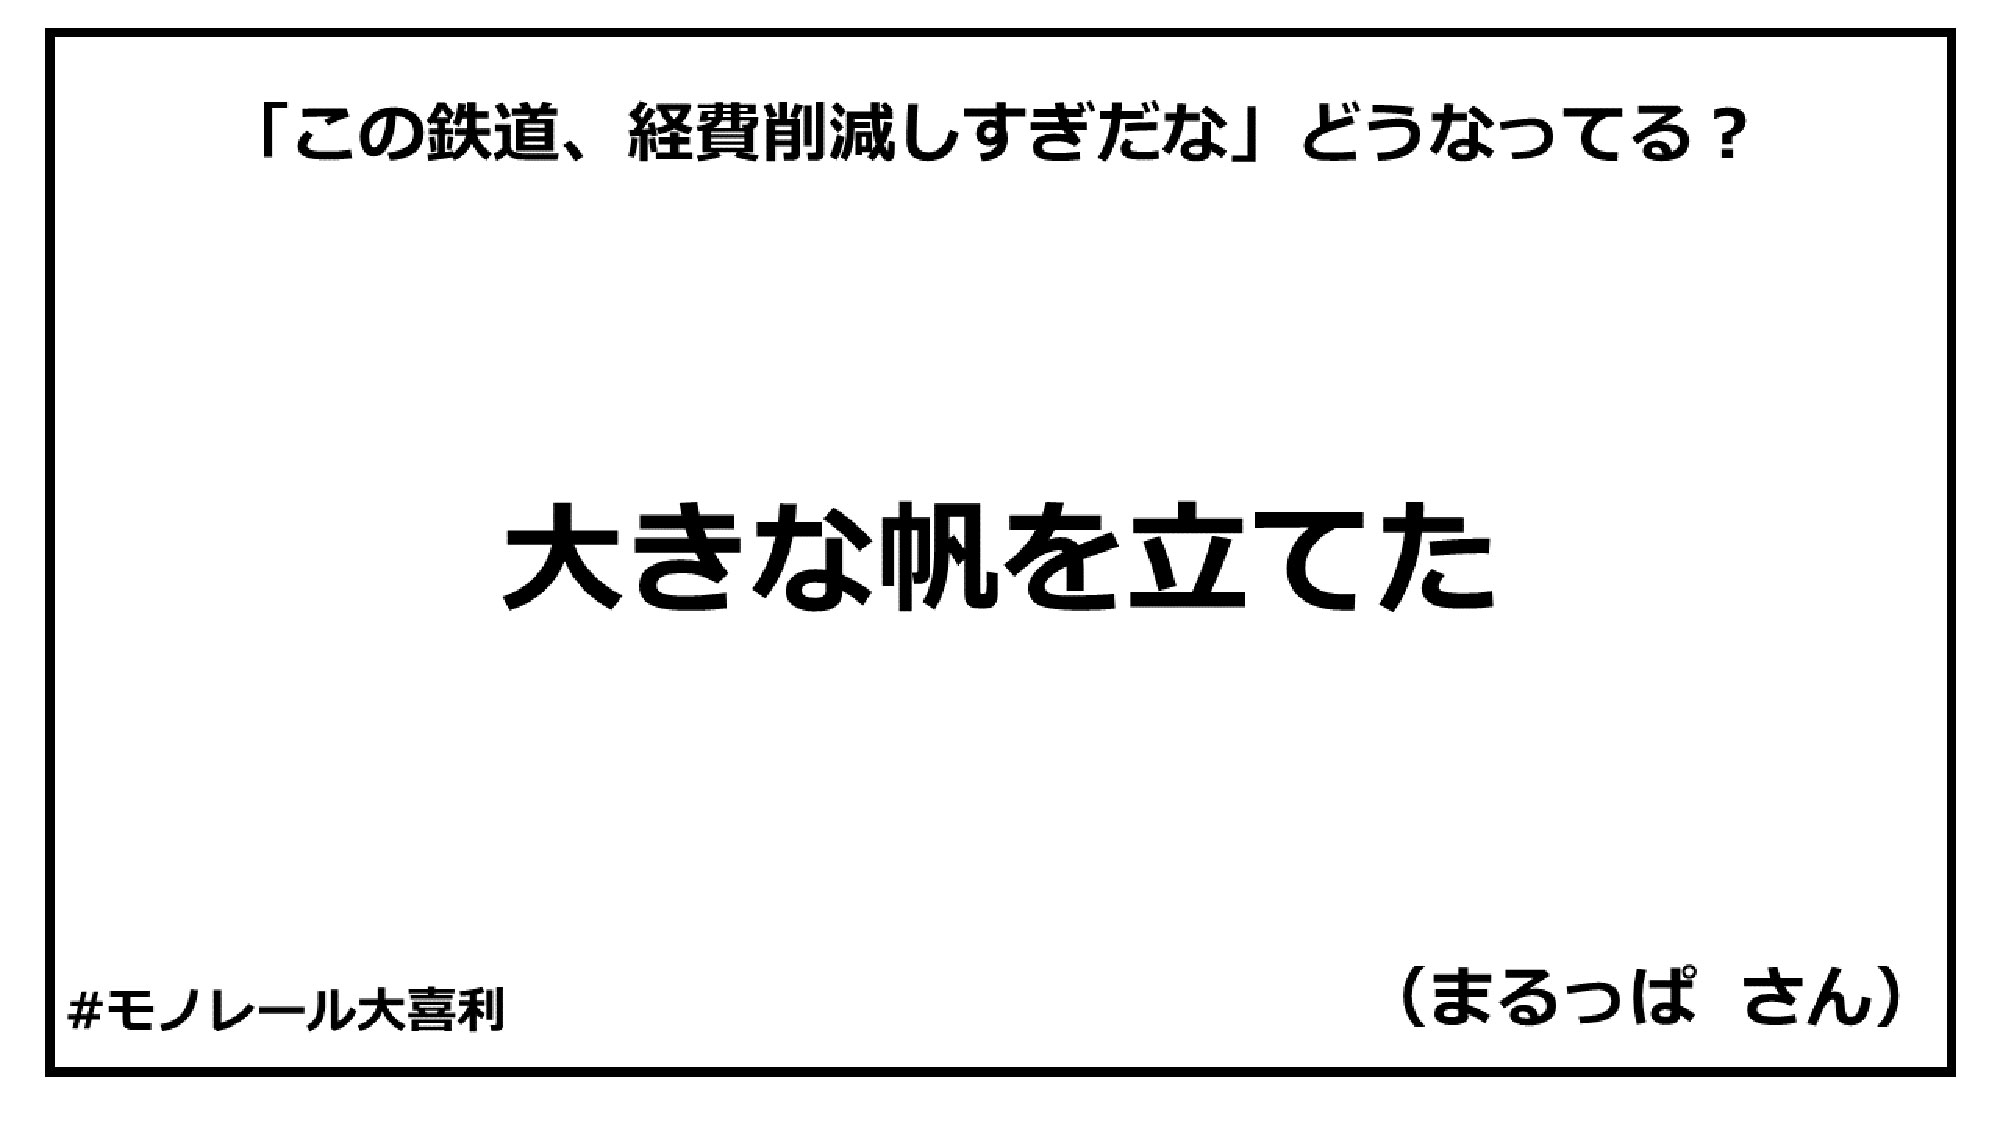 ogiri_answer_28_7.jpg